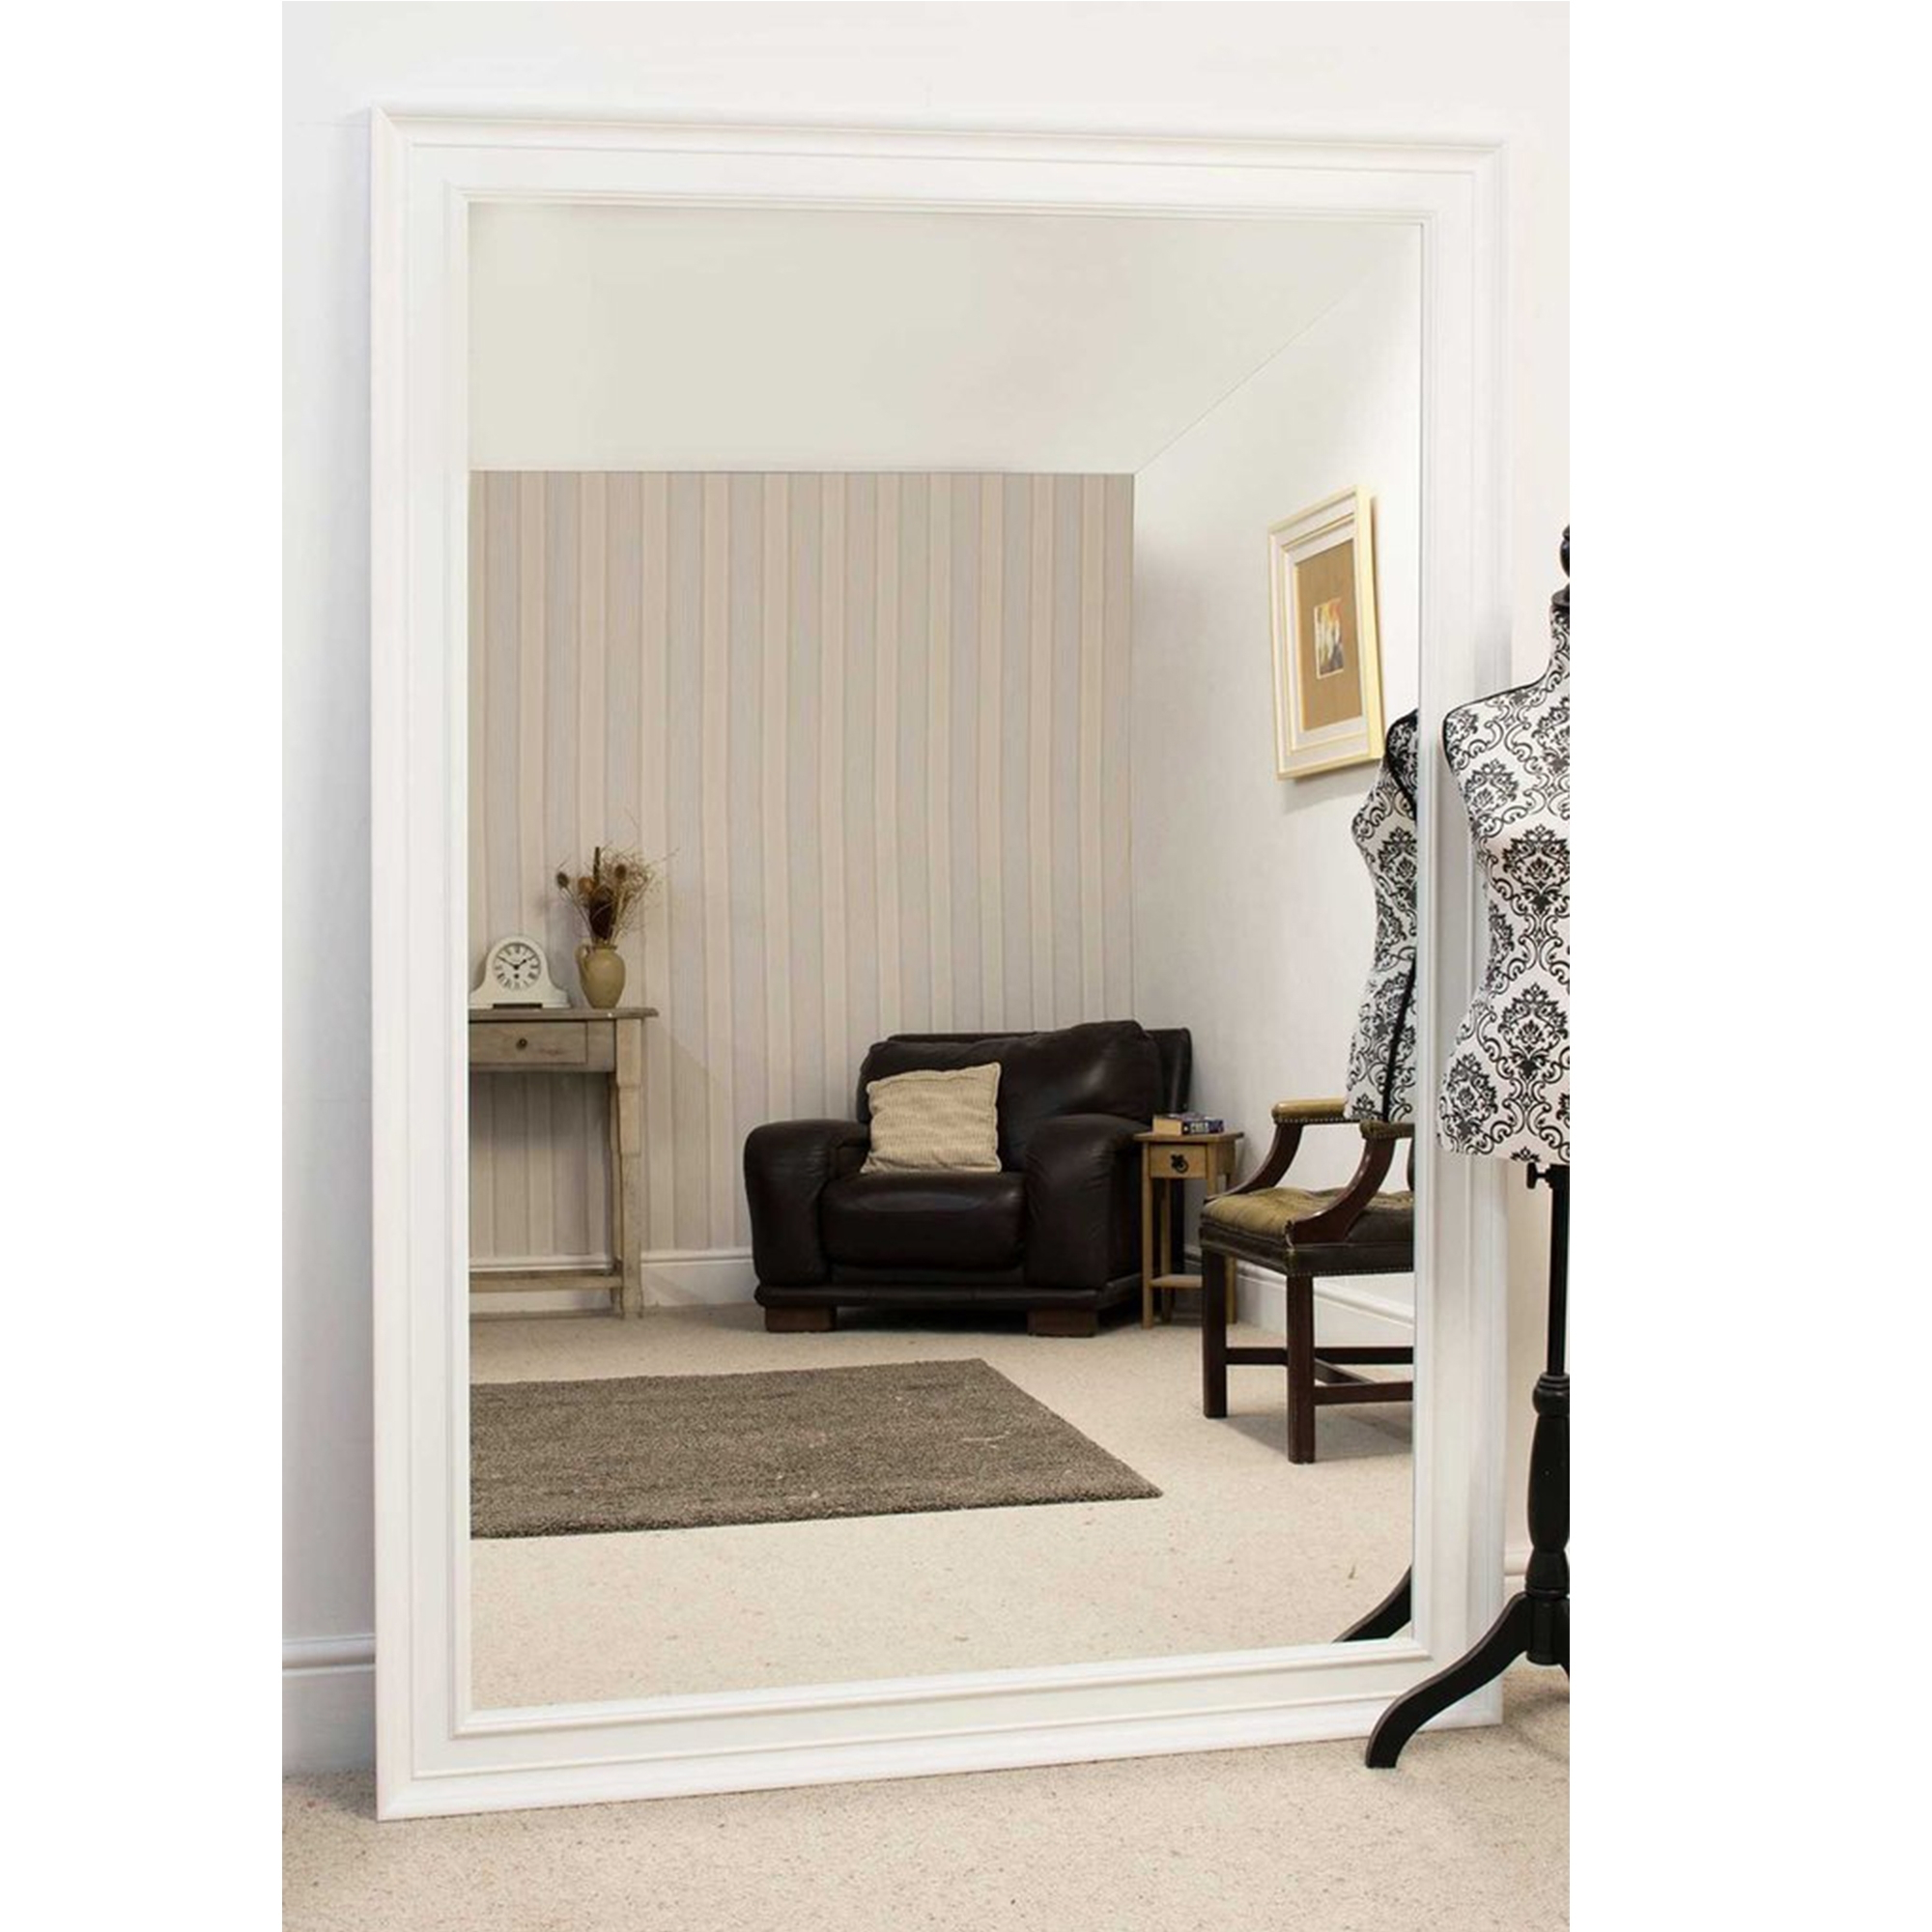 Gutaussehend Ornate Wall Mirror White Antique Full Set Ideas Sri For Most Current White Long Wall Mirrors (View 3 of 20)